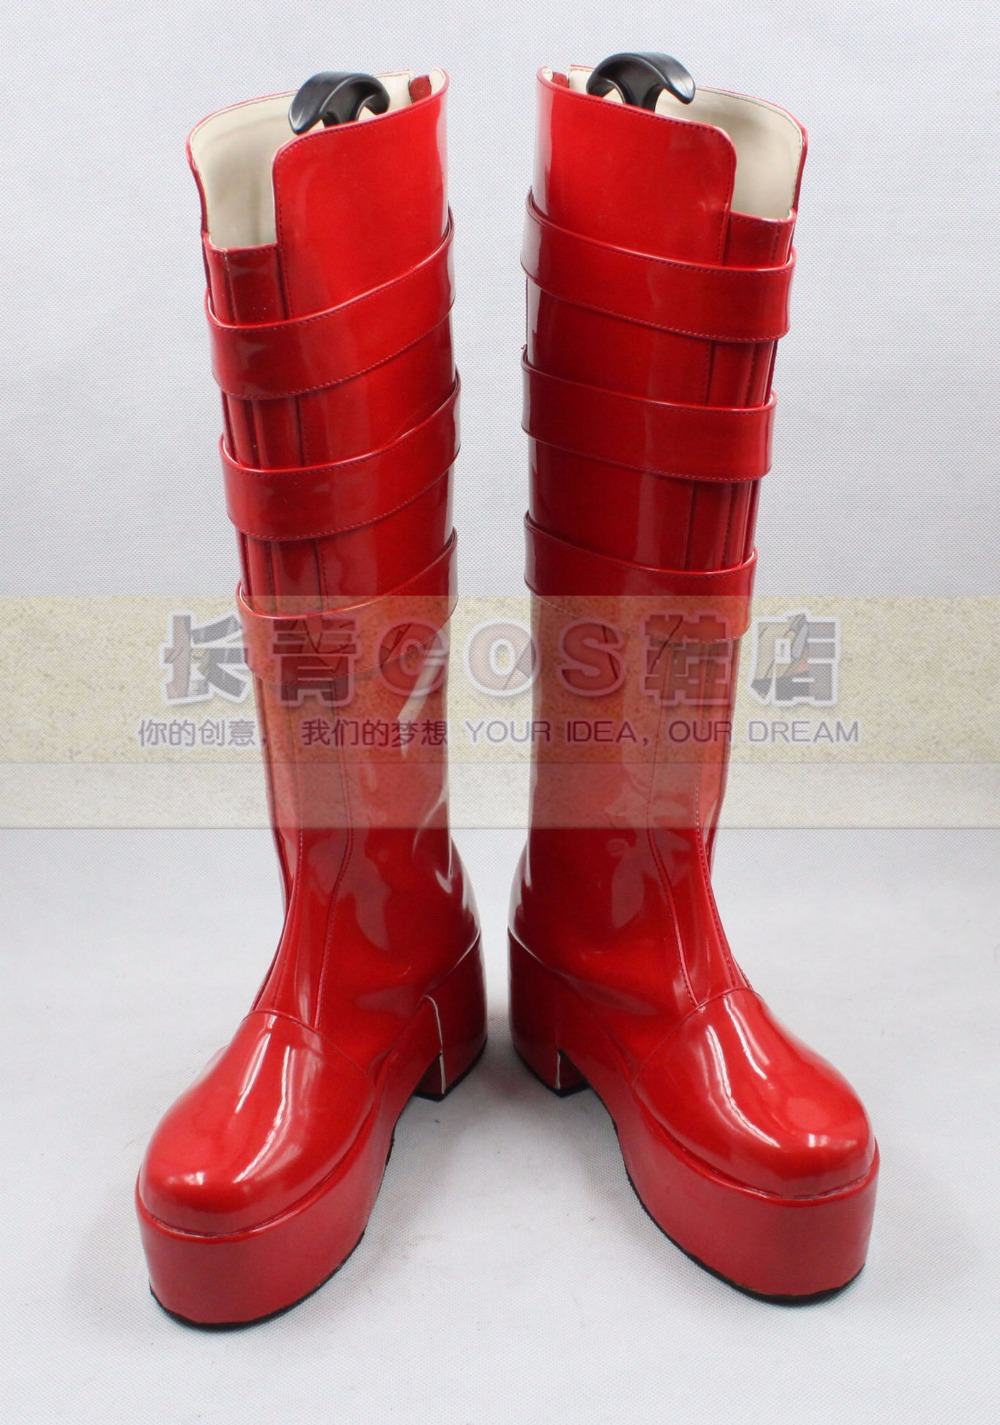 ONE PIECE Perona cosplay Shoes Boots Custom Made 7761